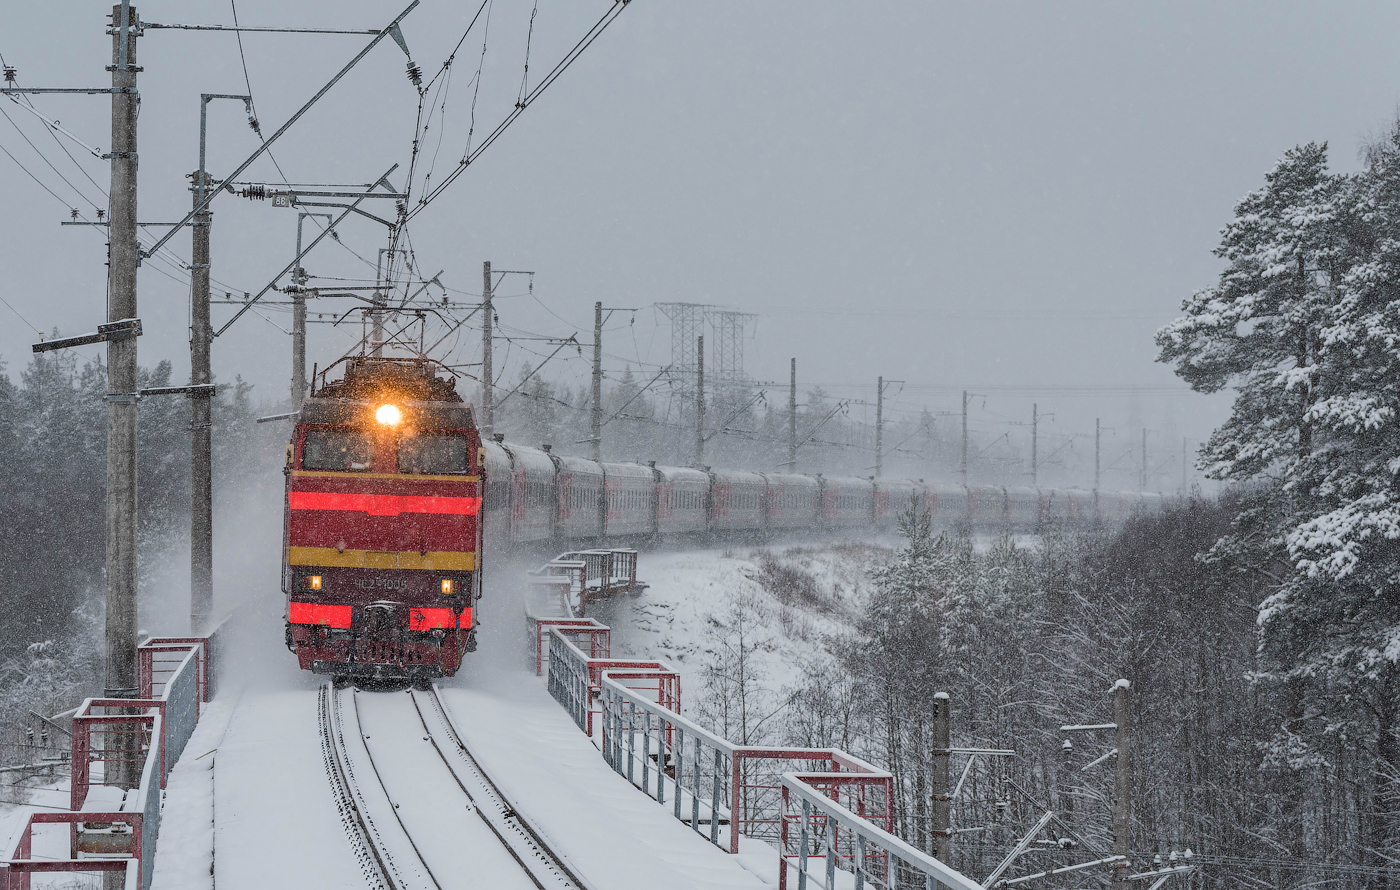 https://trainpix.org/photo/290582/?vid=9963